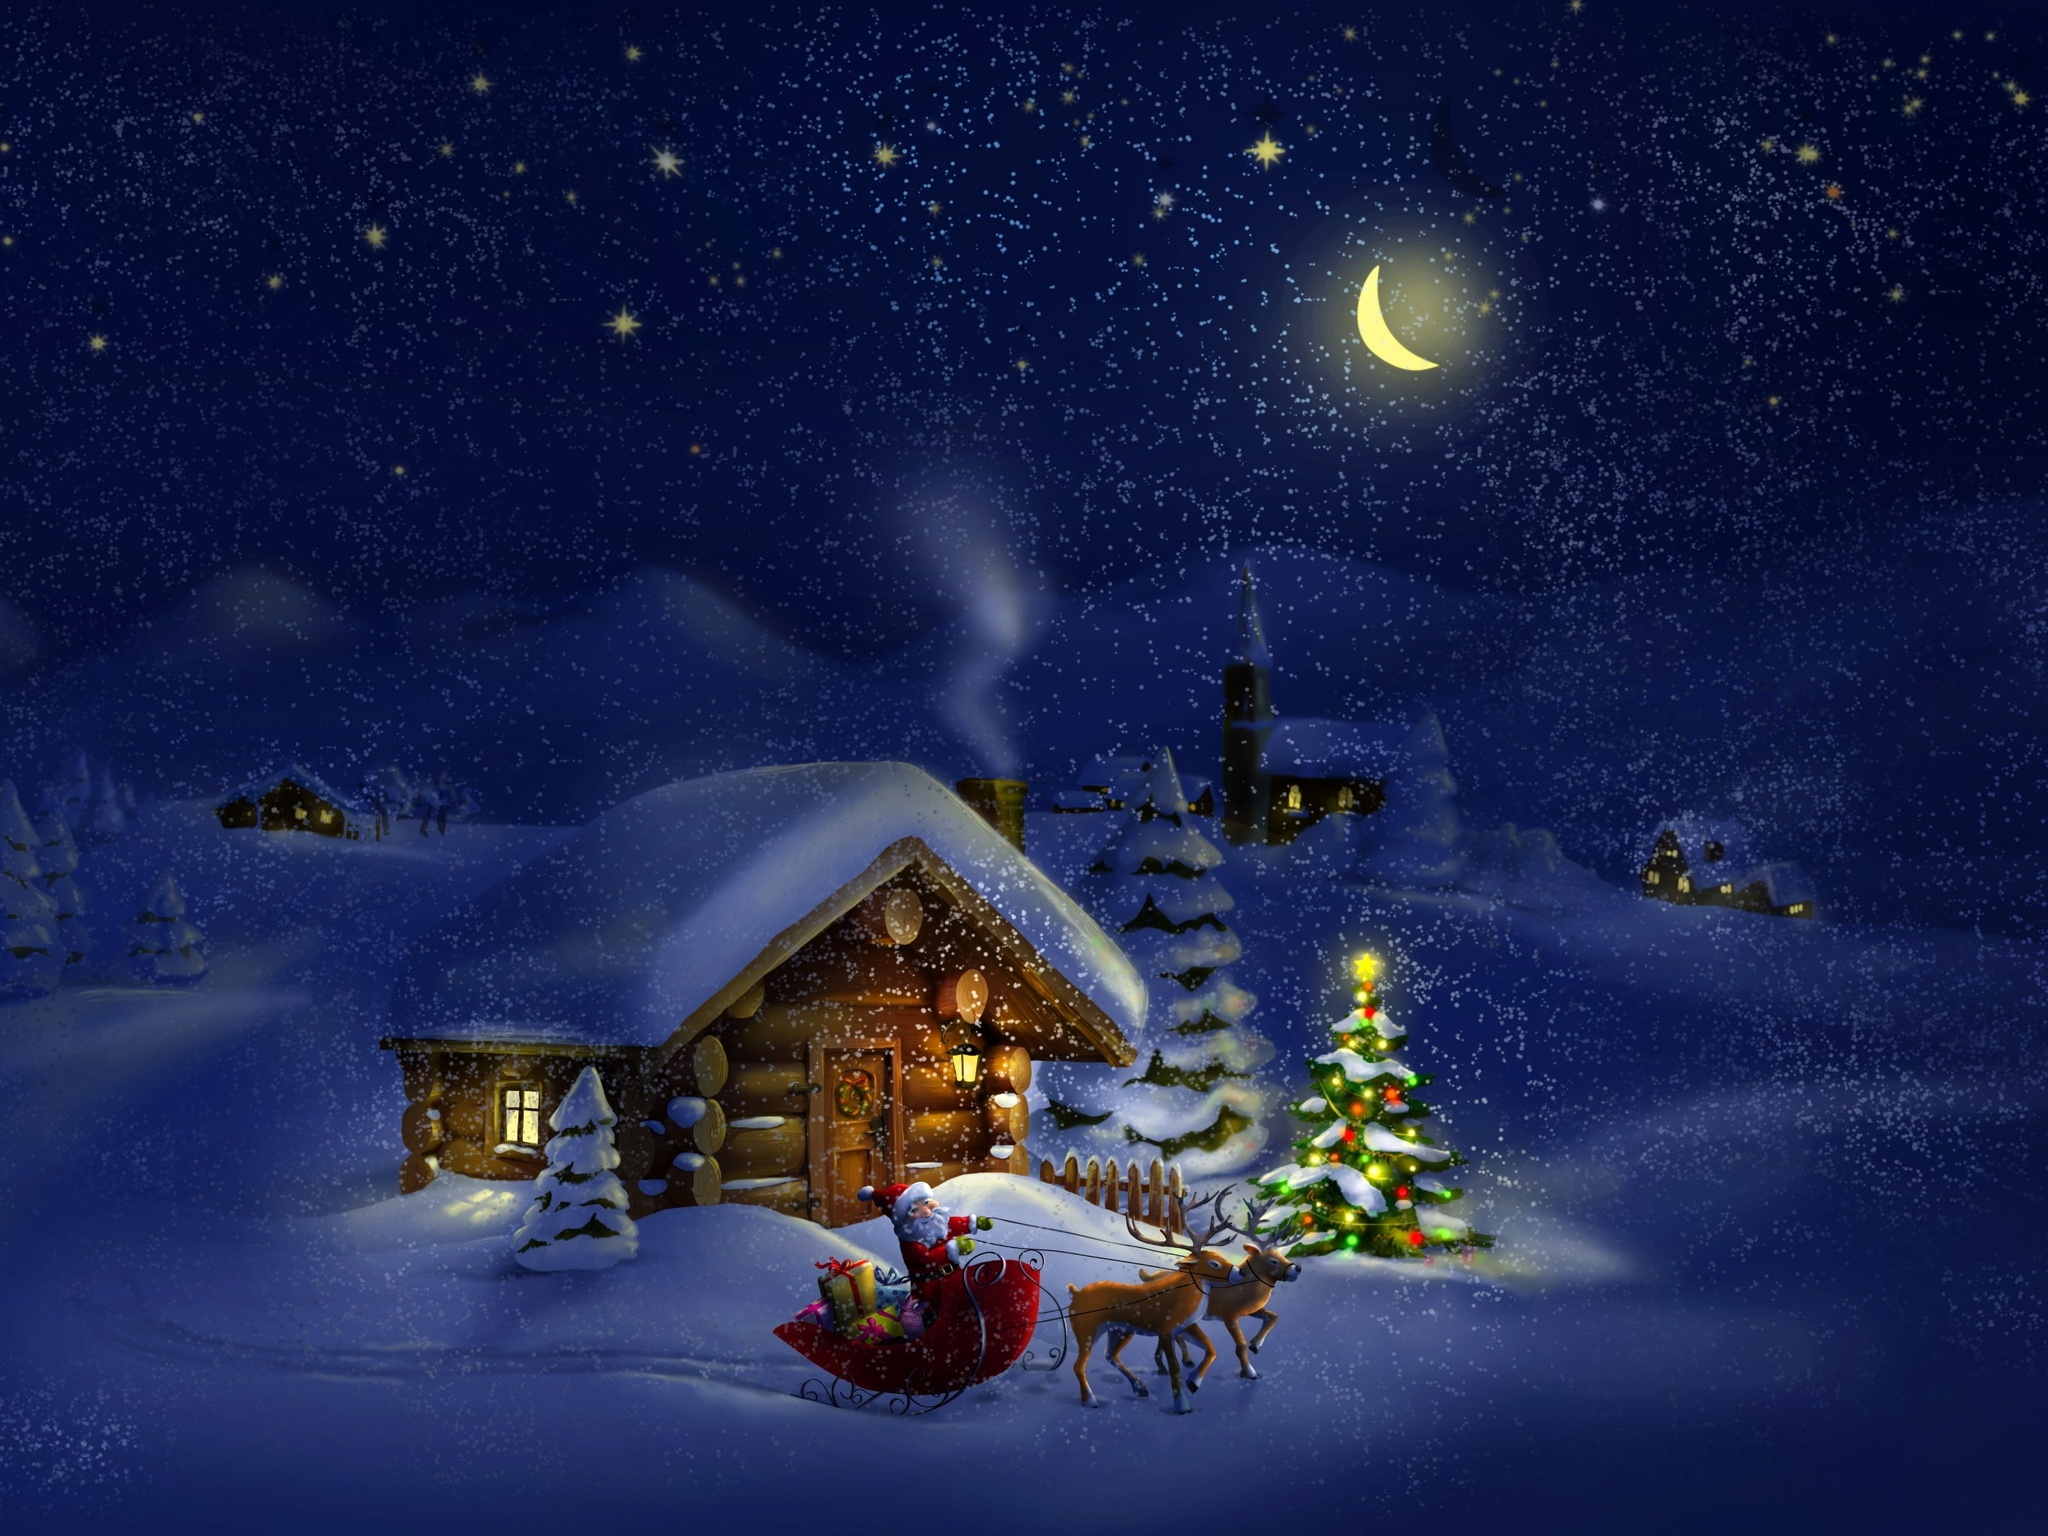 Christmas night with Santa 4K Ultra HD wallpaper 4k WallpaperNet 2048x1536